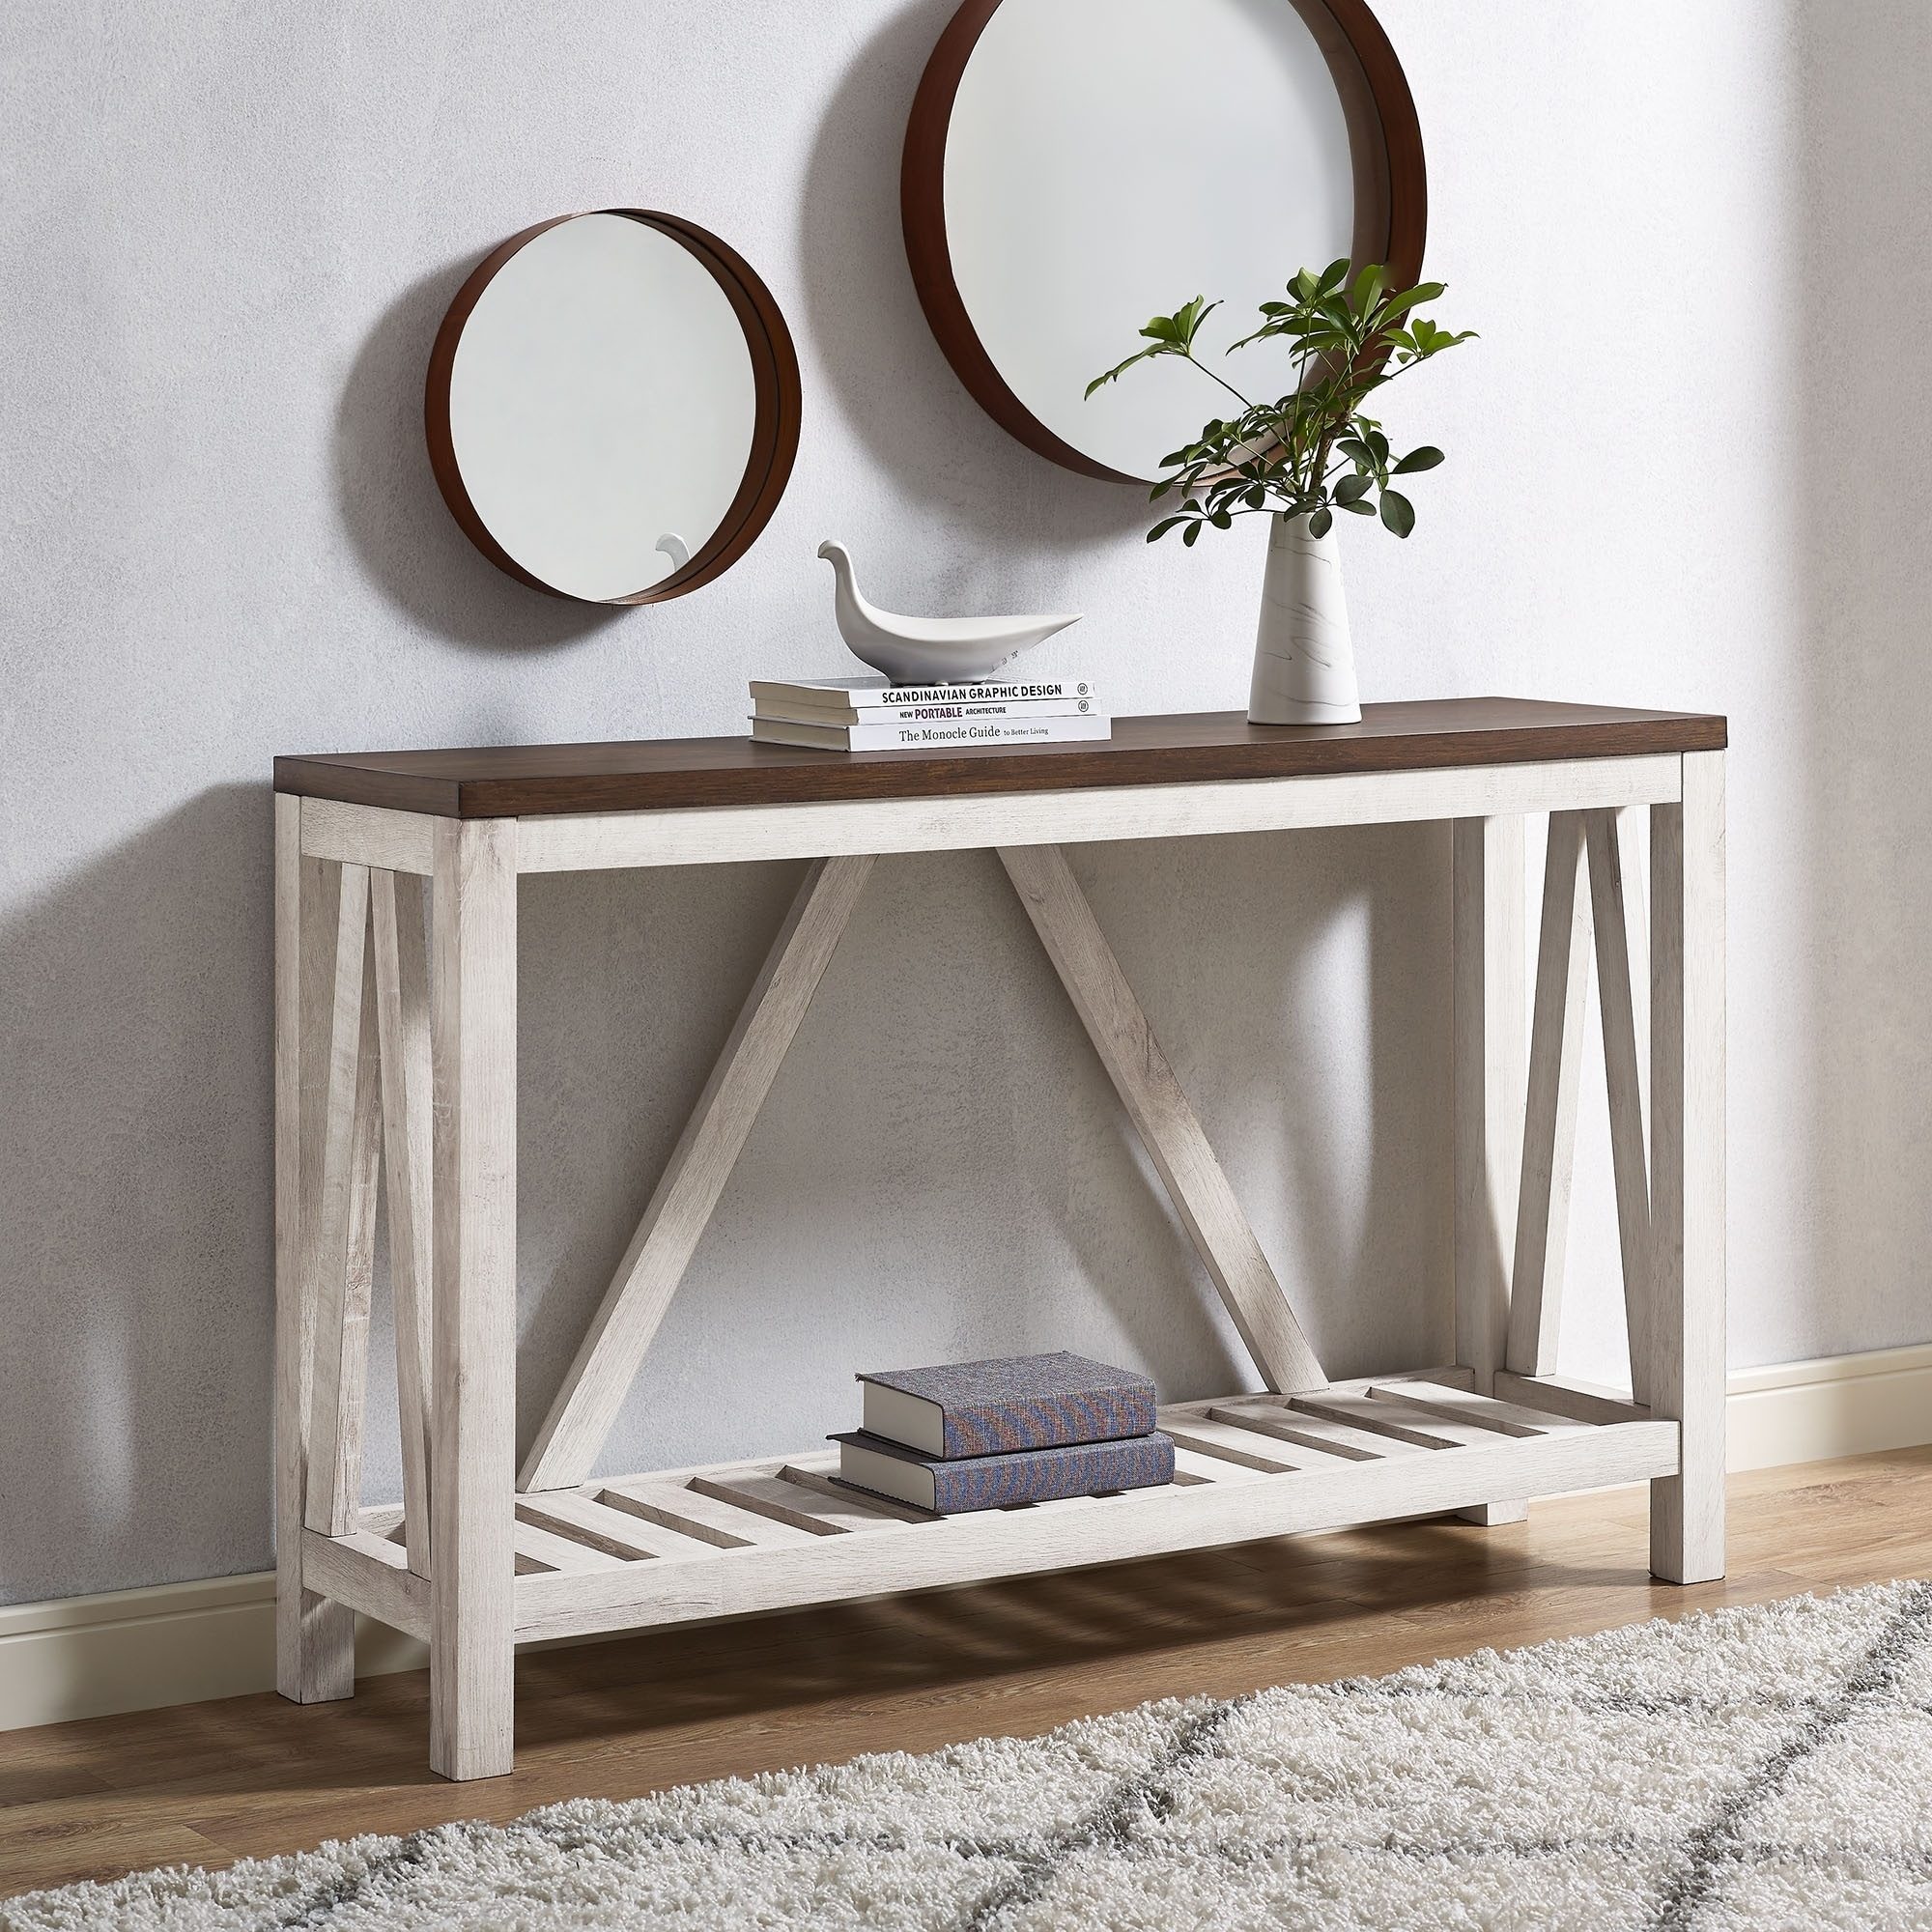 52 A Frame Entry Console Table X 14 32h